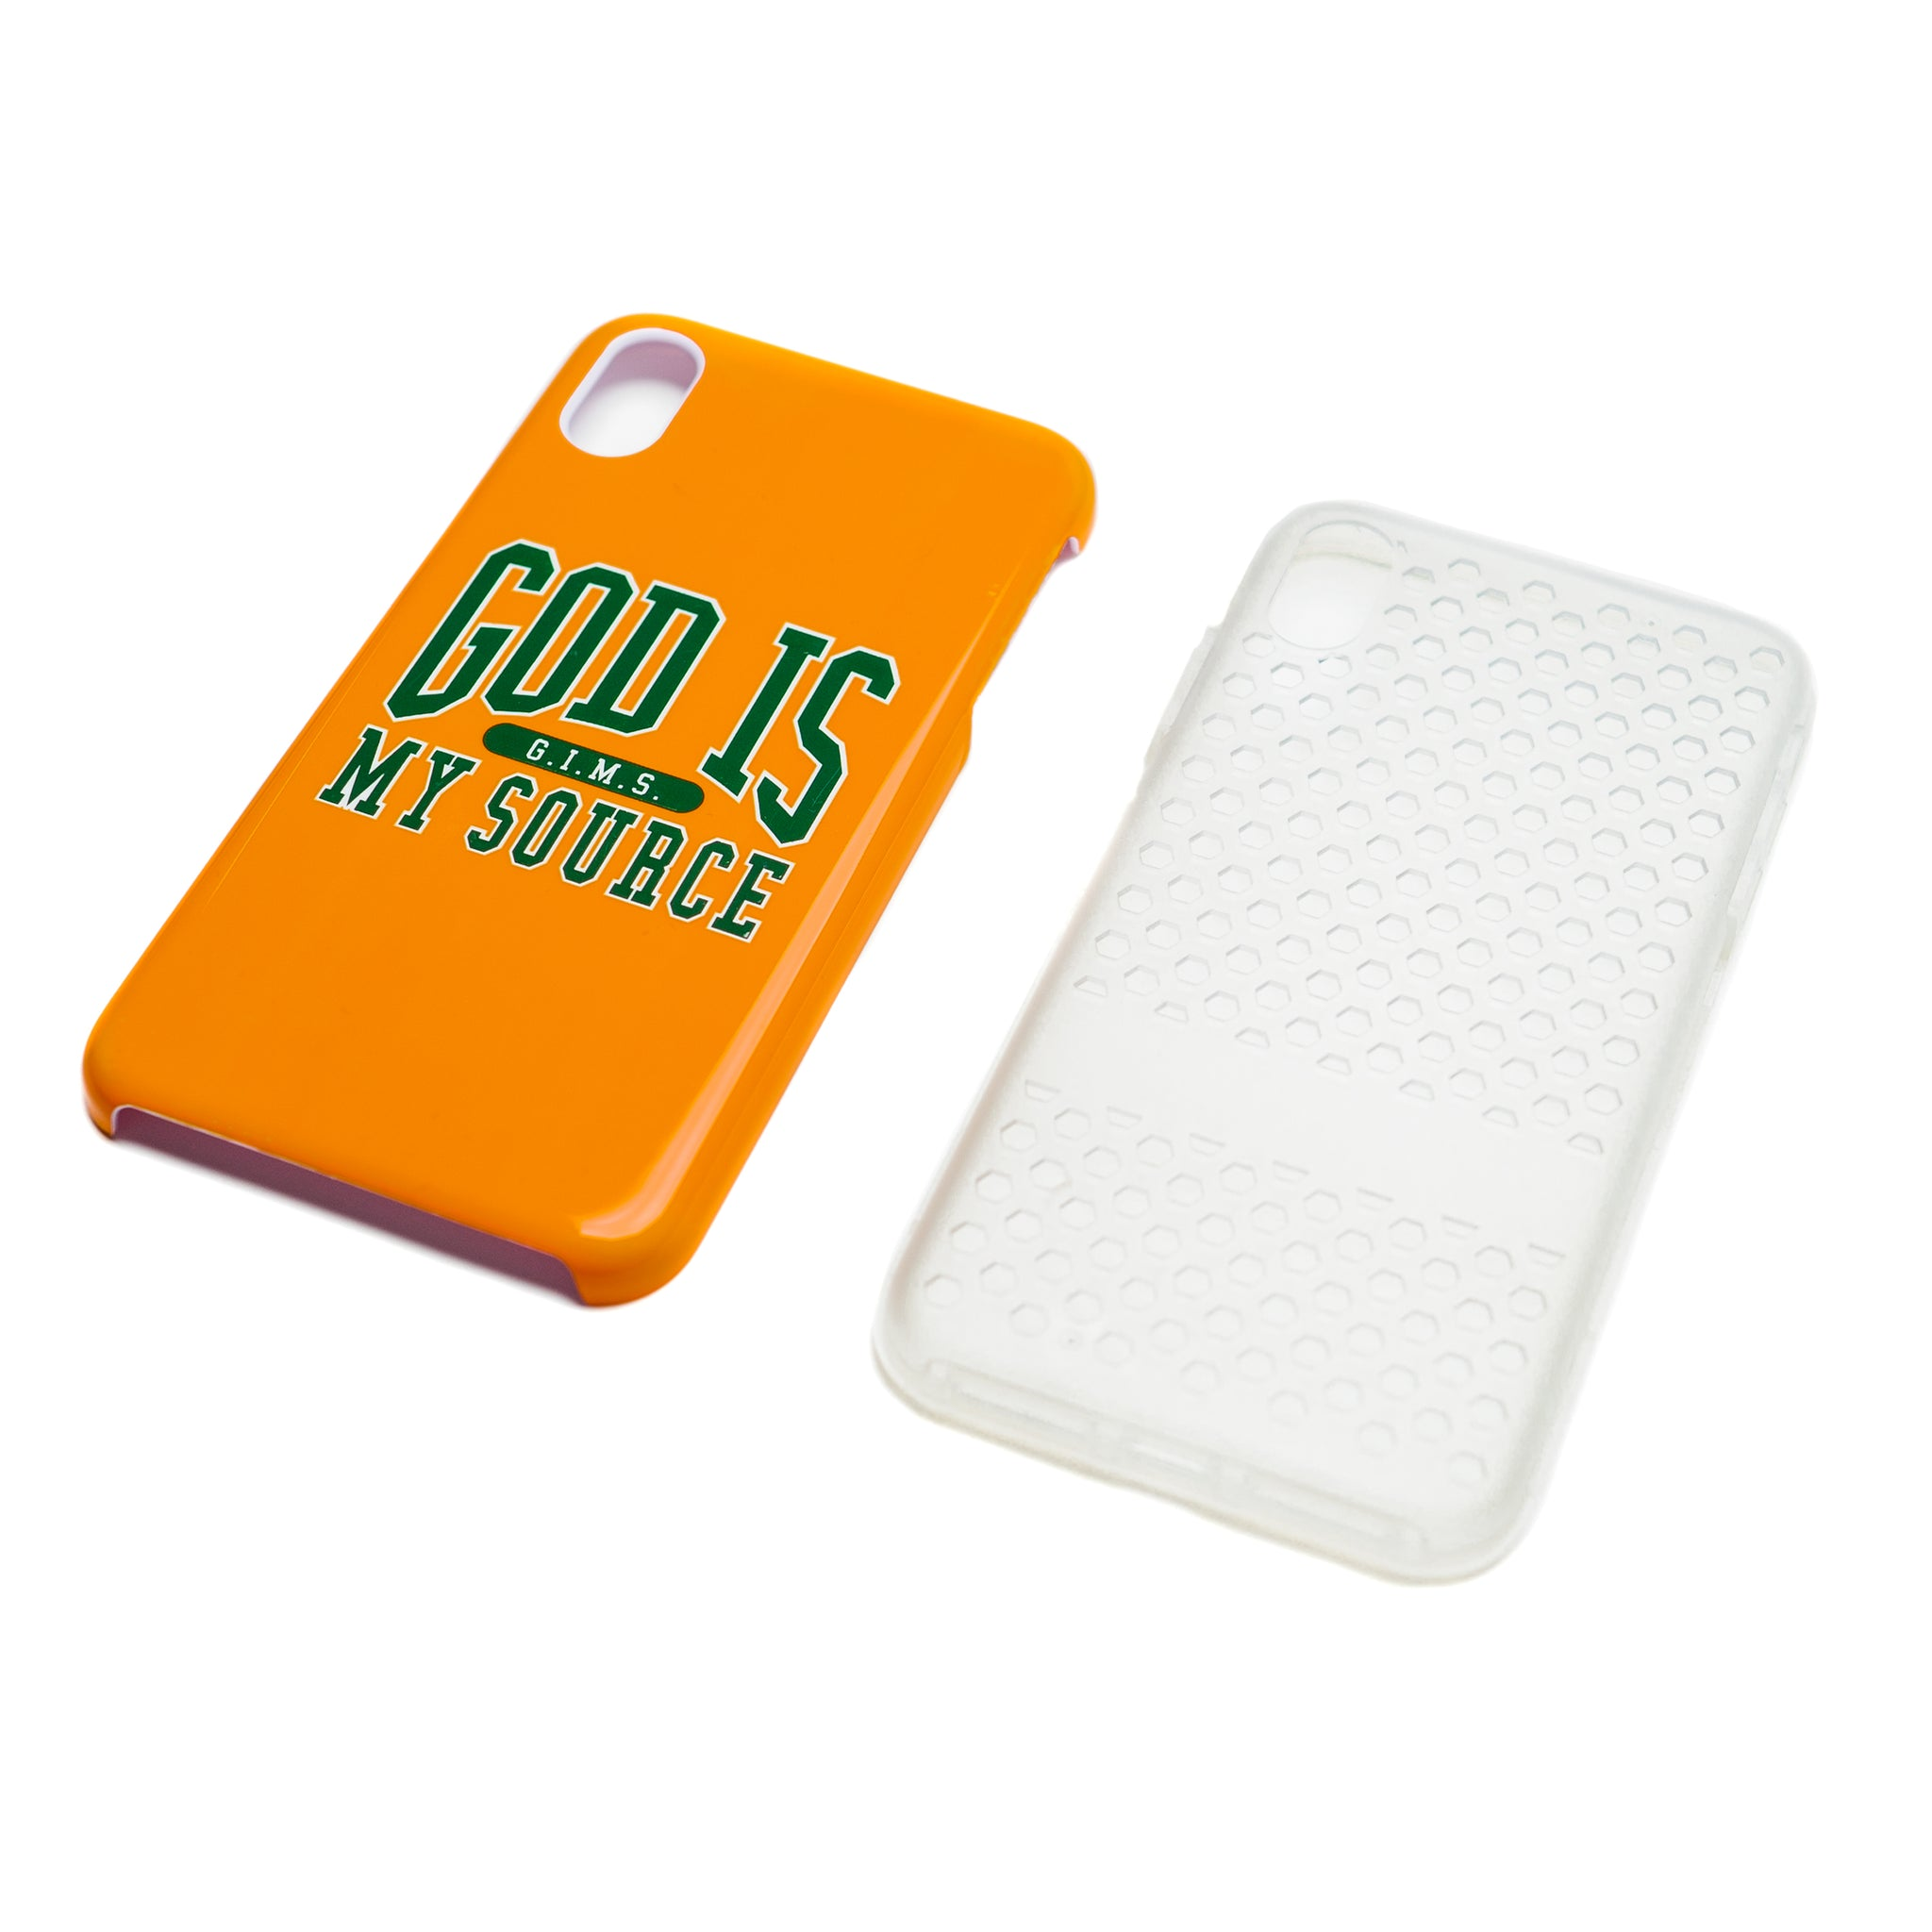 God Is My Source 'Campus' iPhone Case Orange / Green - Accessories God Is My Source